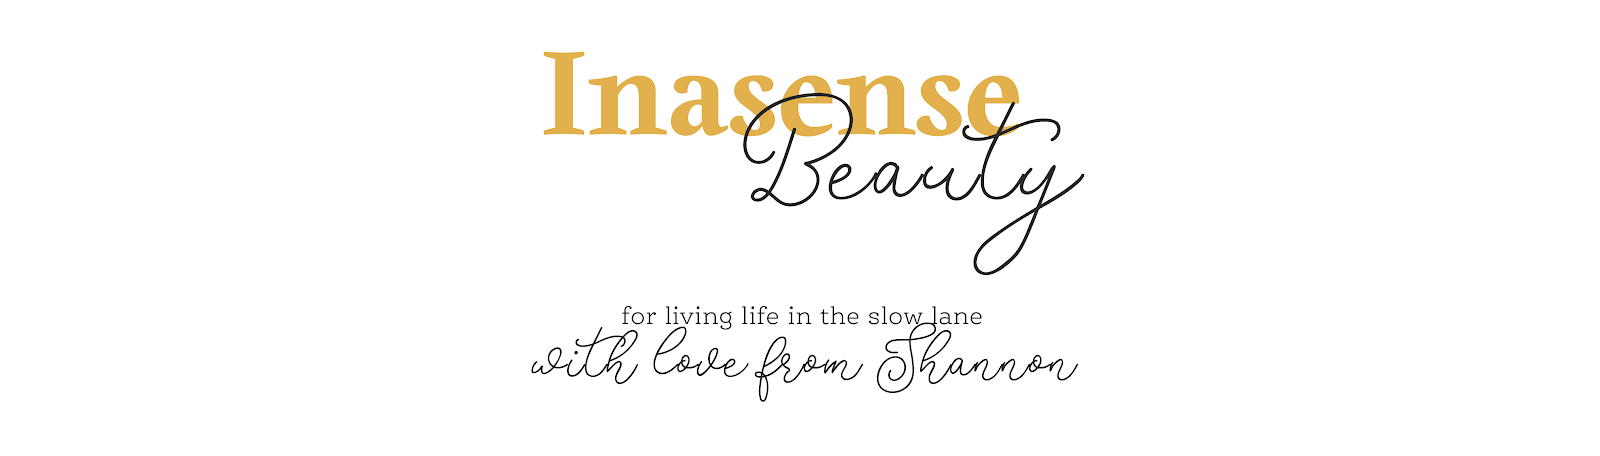 Inasense Beauty 〰 For living life in the slow lane by Shannon Woodfield